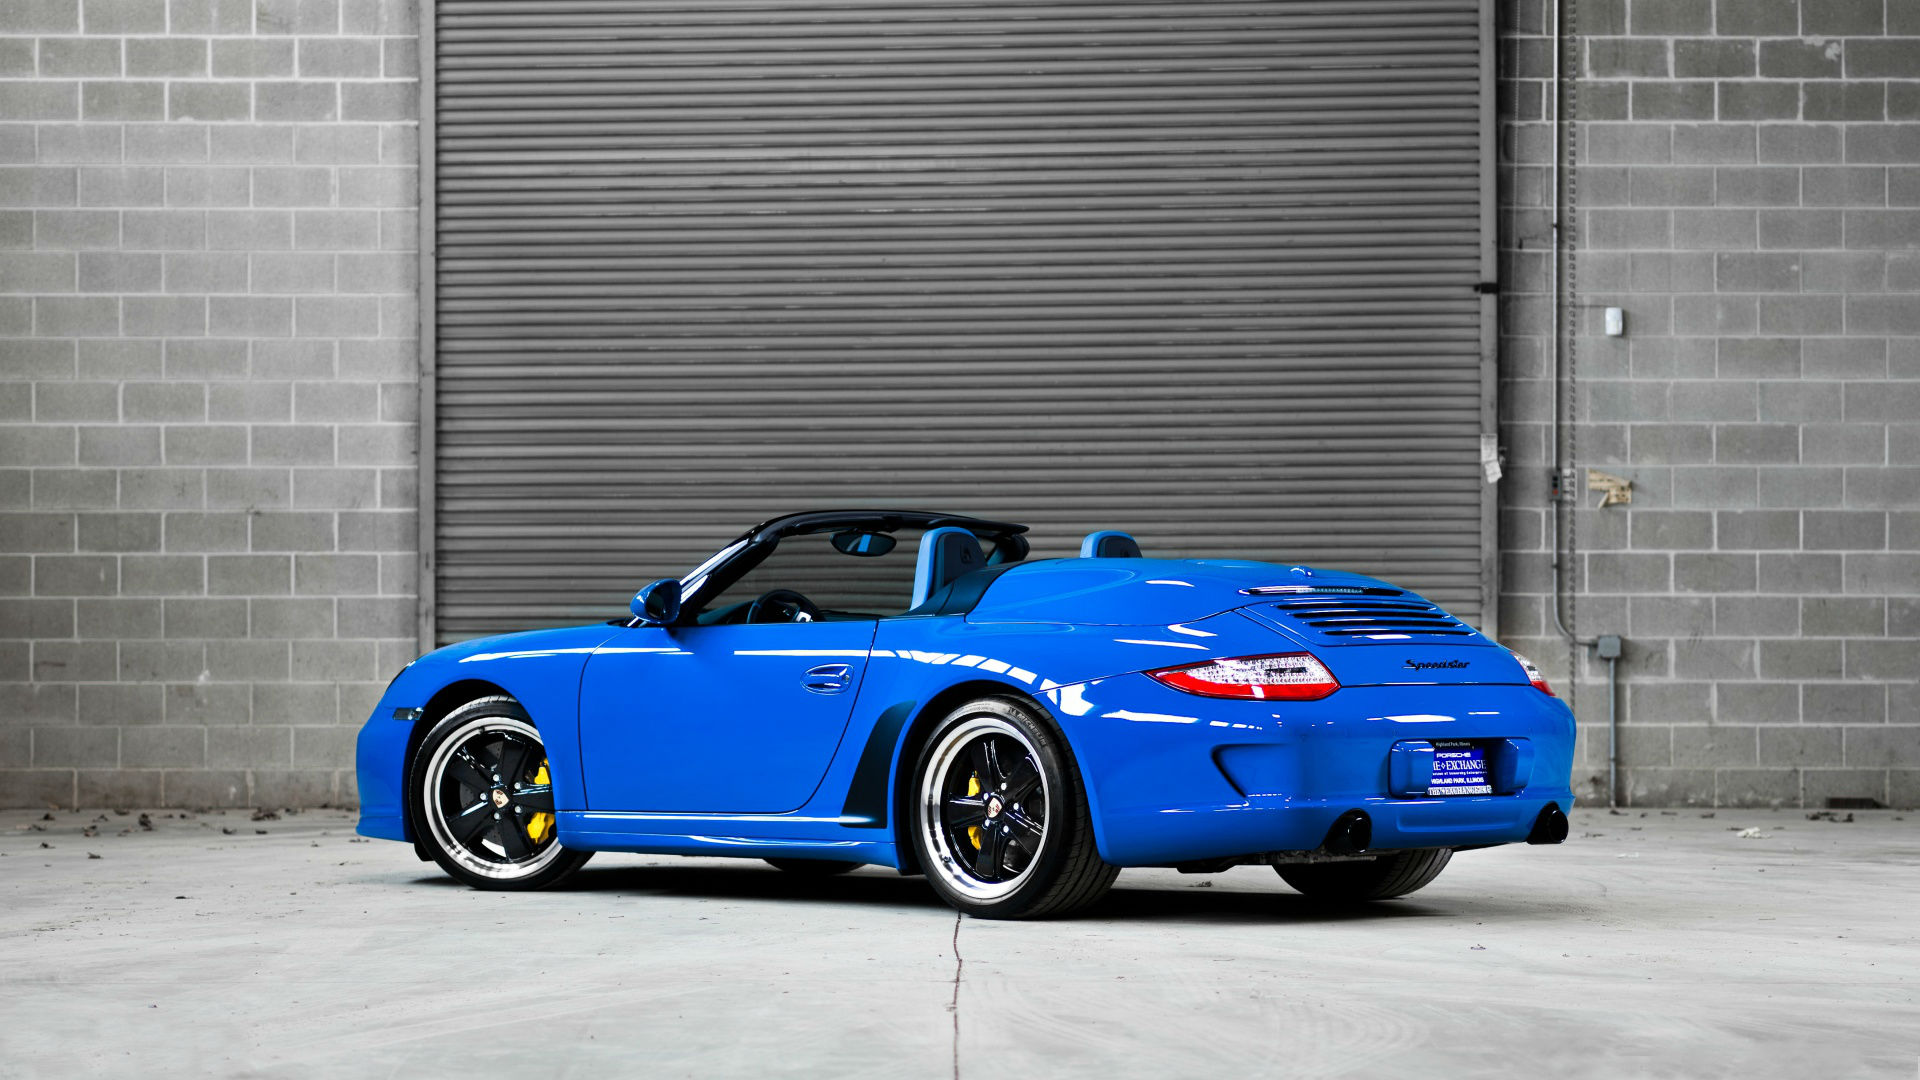 2012 porsche 911 997 speedster 2 wallpaper 1920x1080 1920x1080